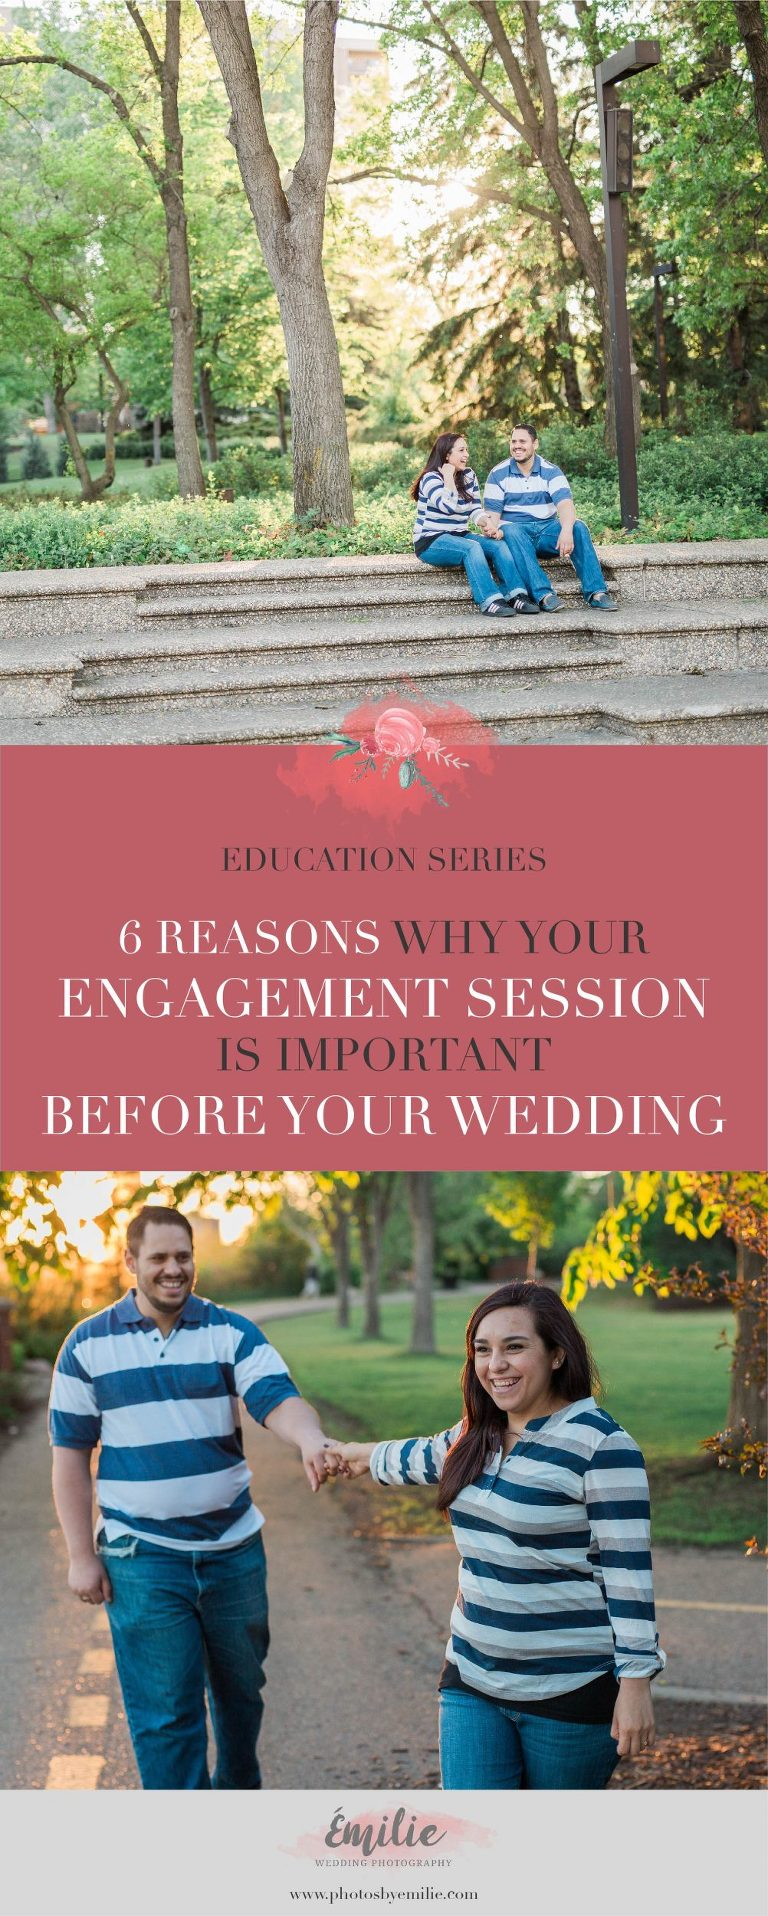 Why is an Engagement Session Important